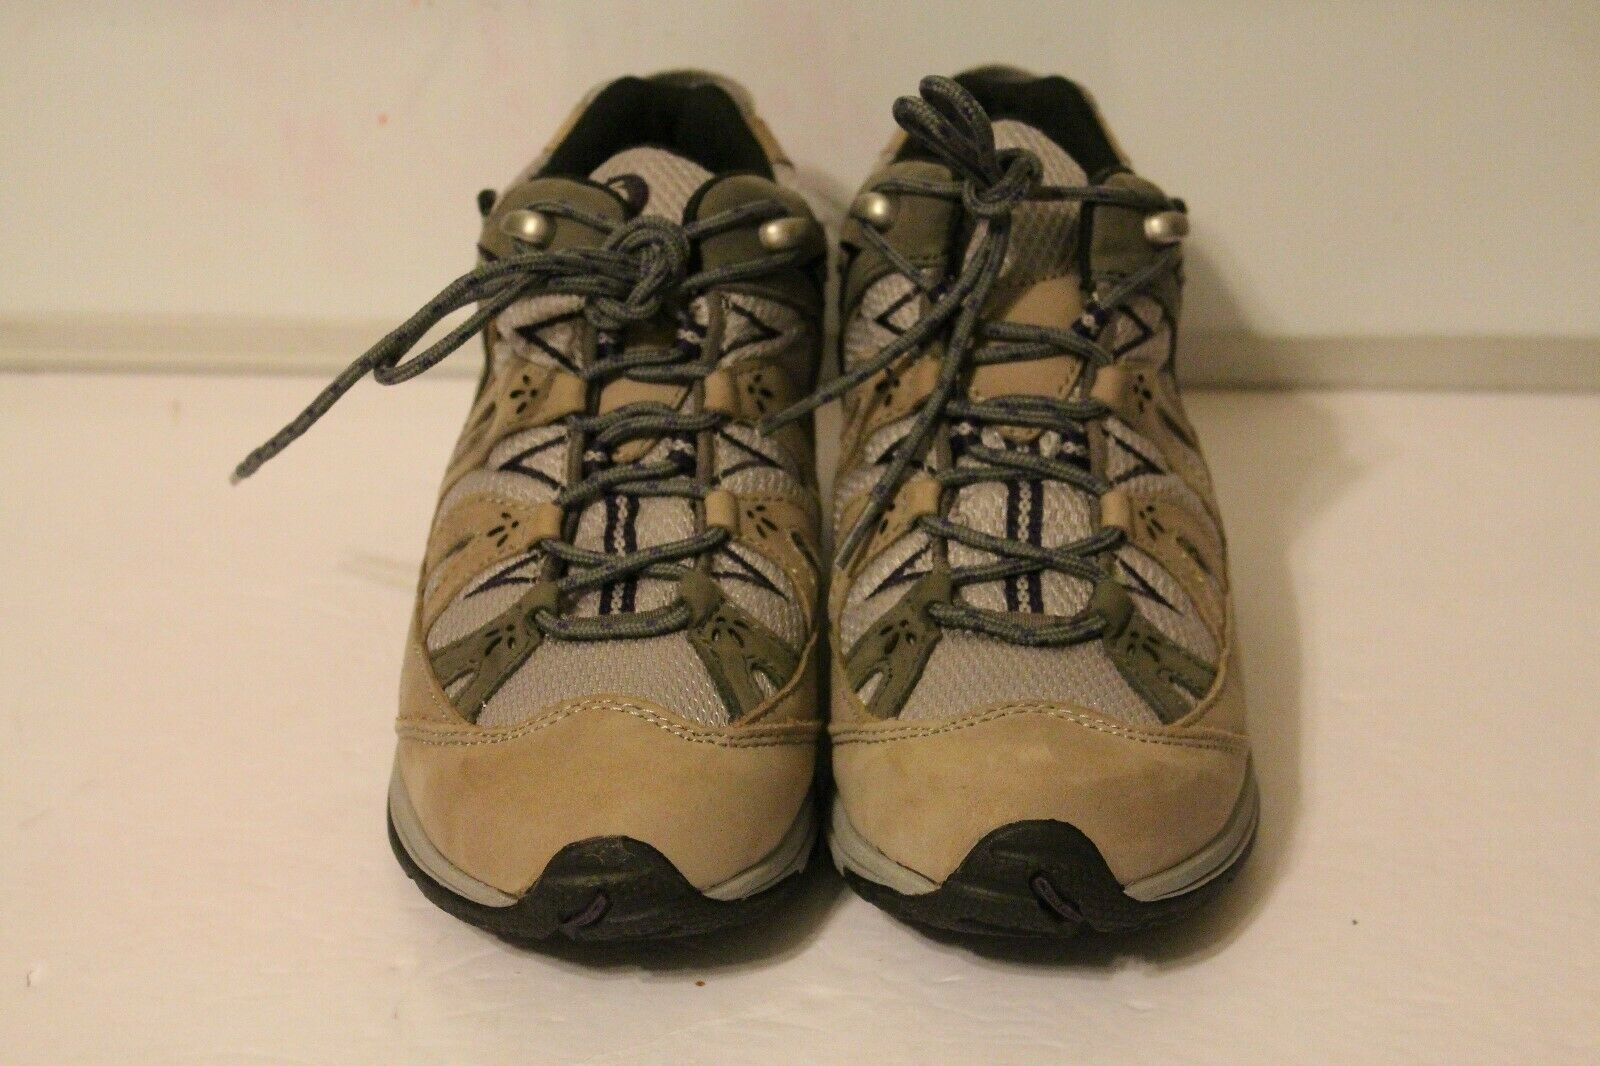 NEW OBOZ MYSTIC LOW BDRY TANBELL WATERPROOF HIKING scarpe donna Dimensione 7.5 US